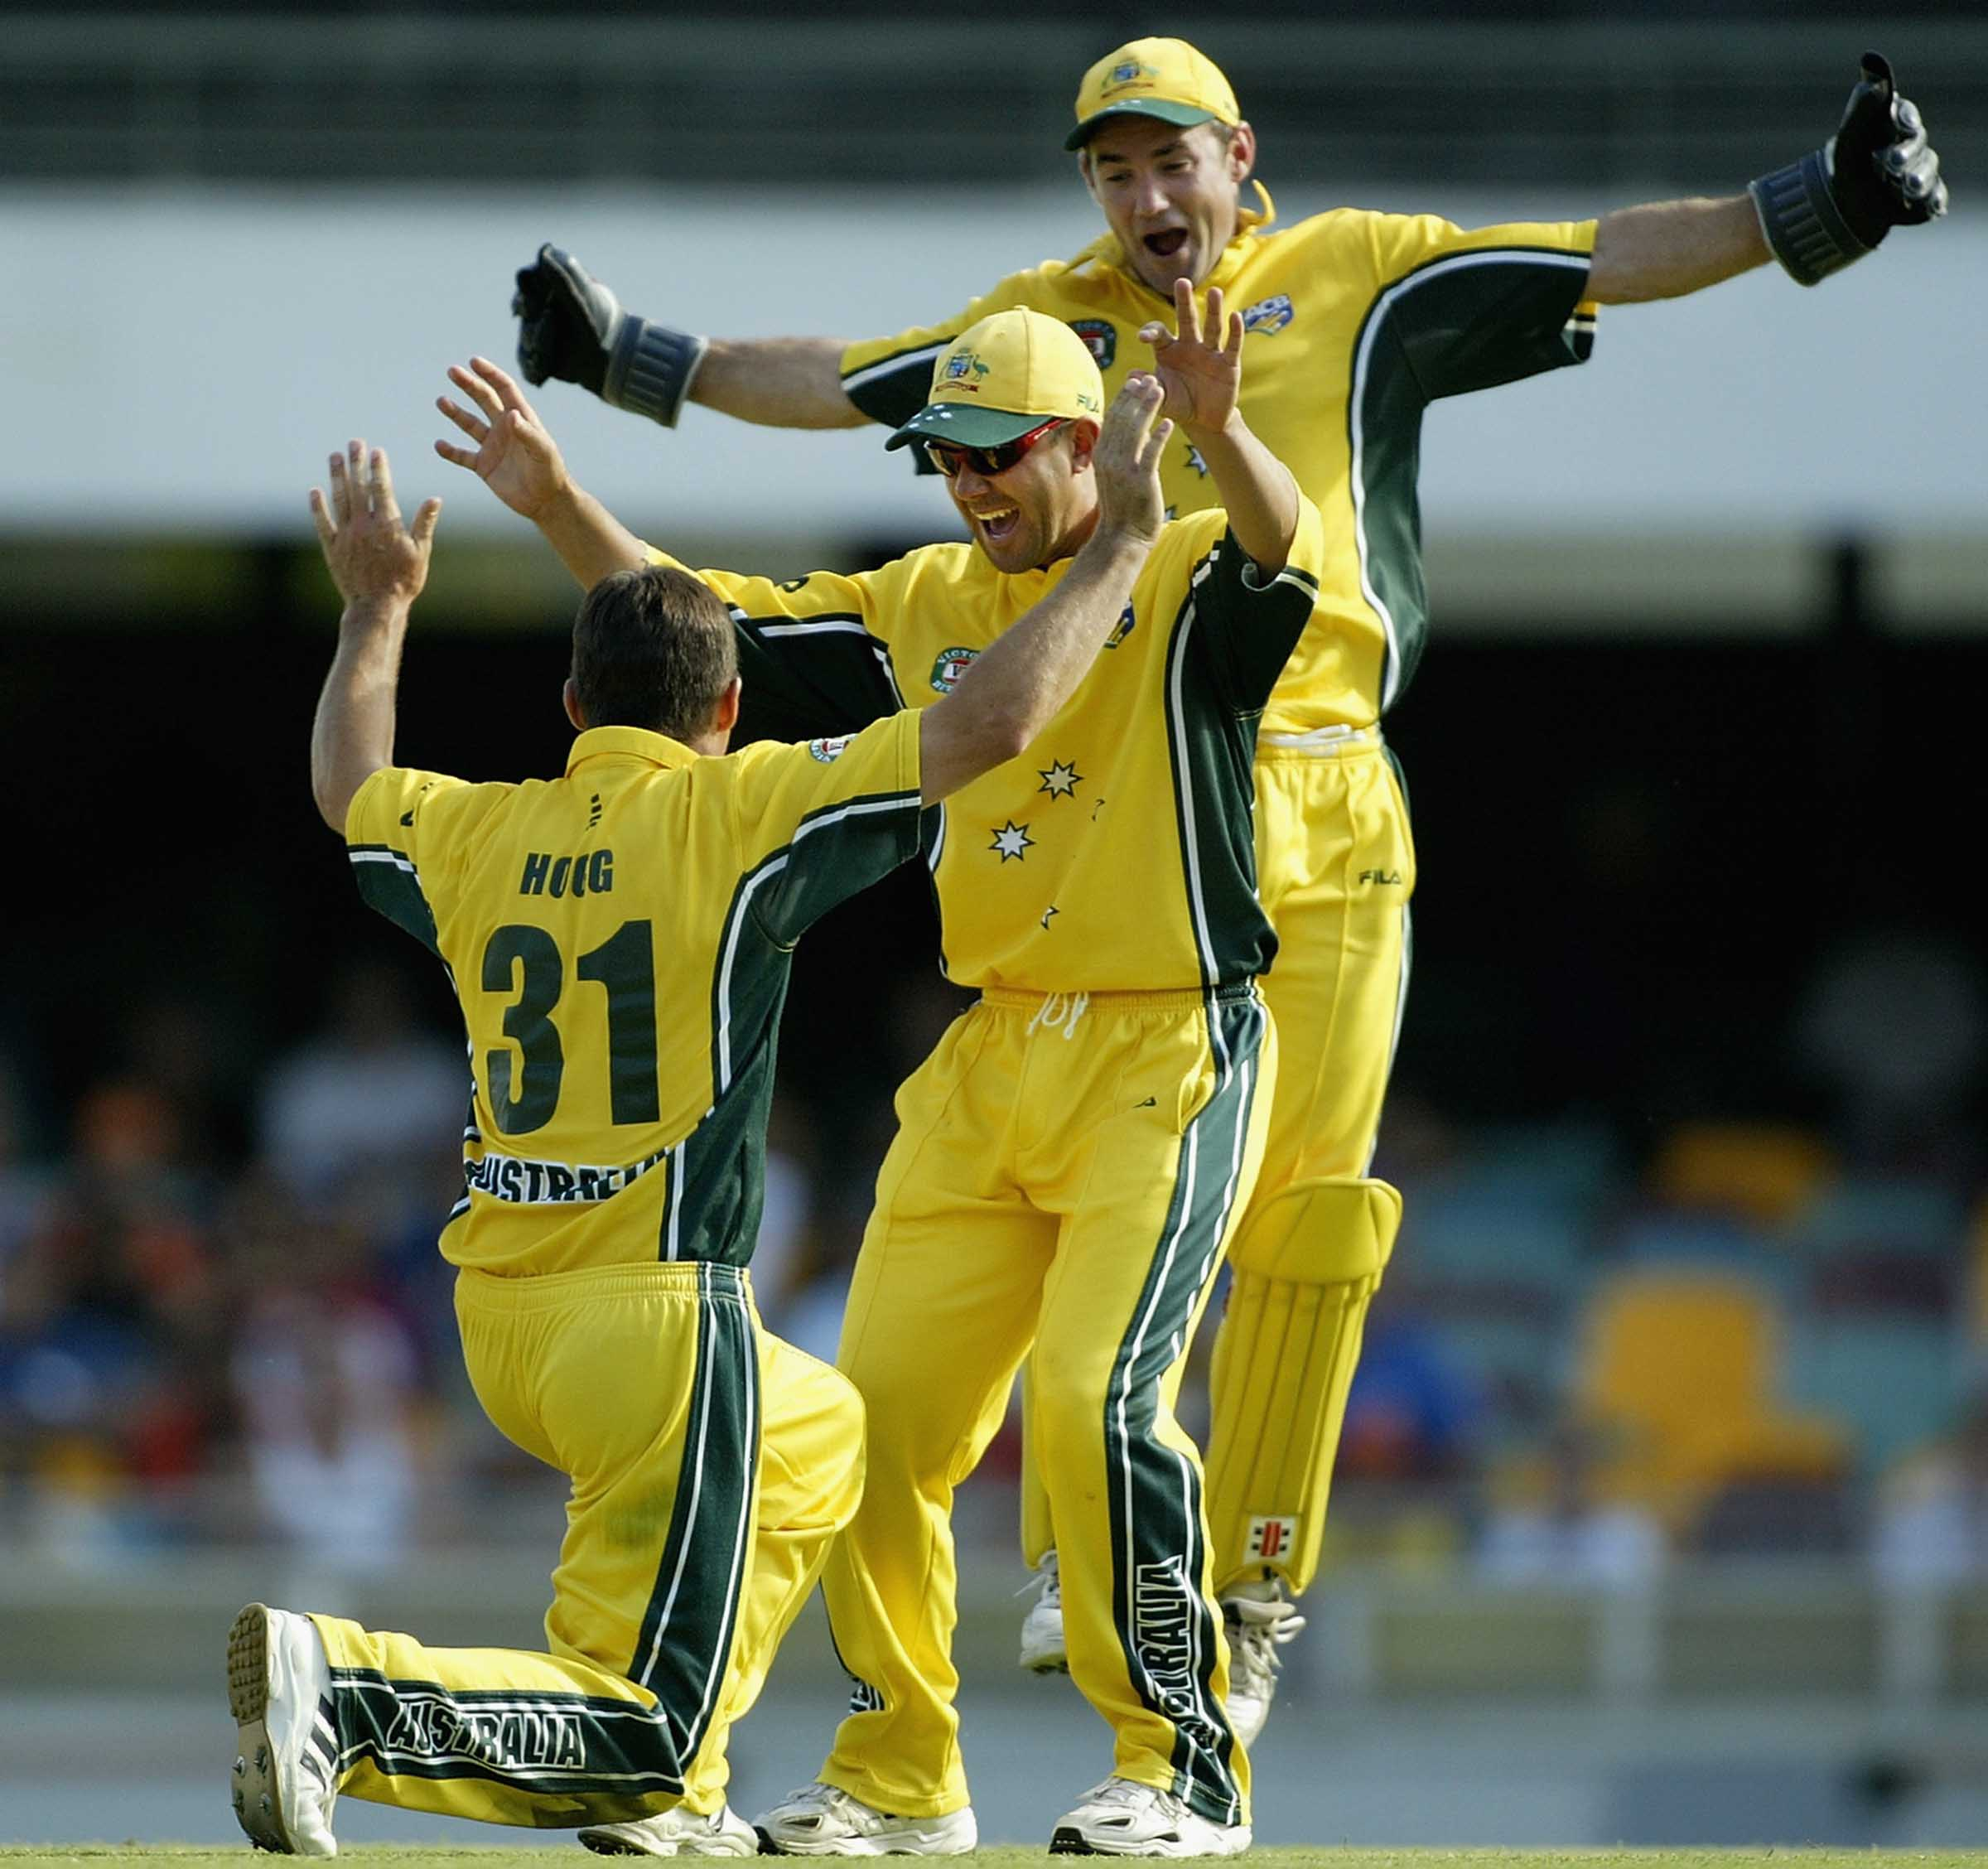 Hogg celebrates a wicket with Ponting and stand-in 'keeper Maher // Getty